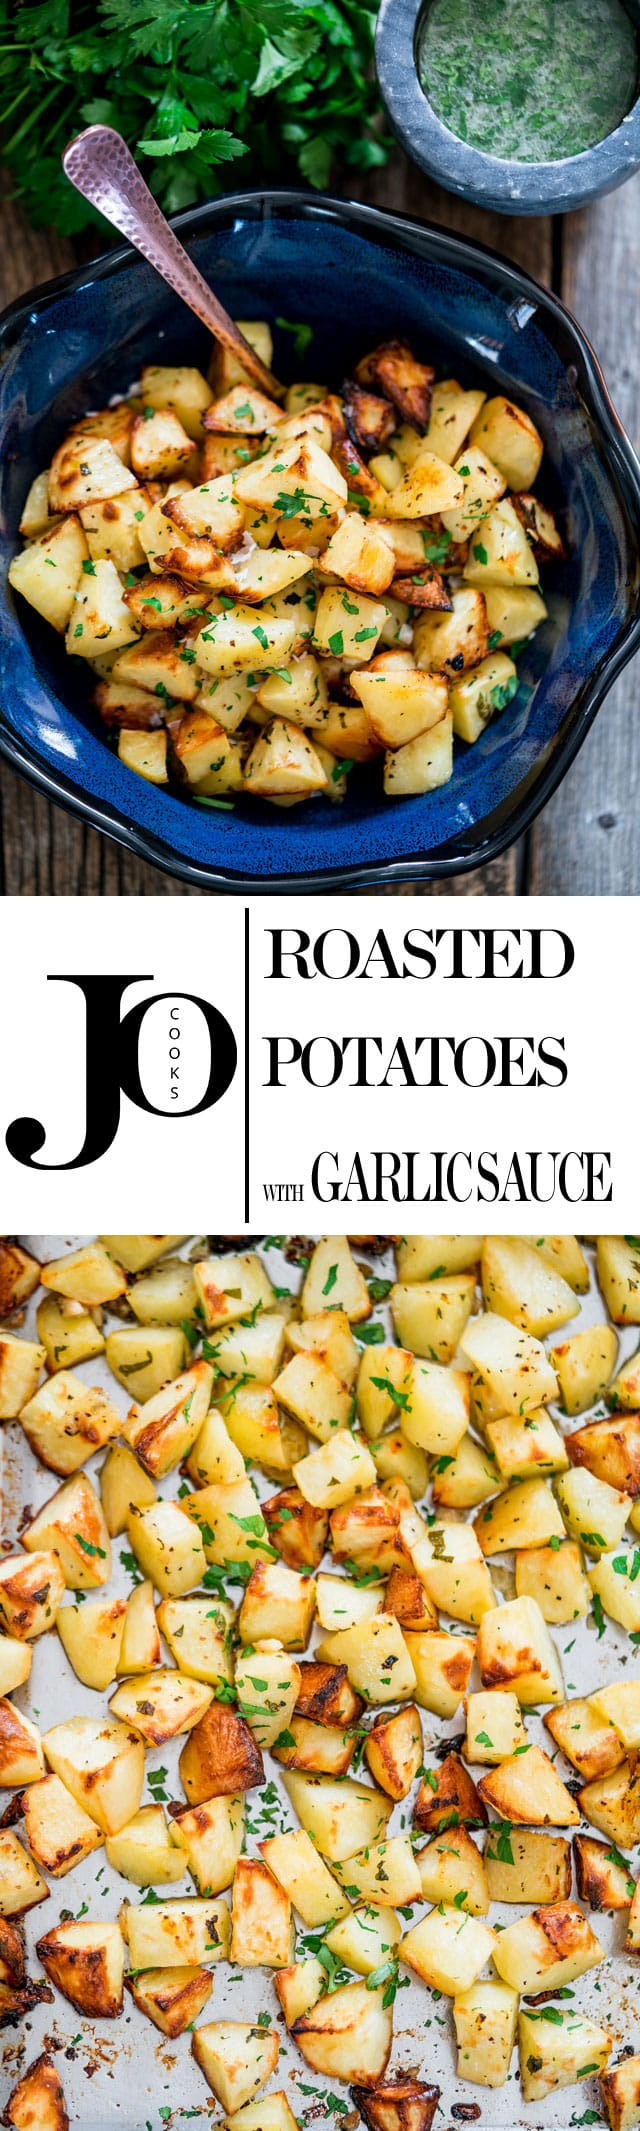 Roasted Potatoes With Garlic Sauce – the best roasted potatoes you will ever eat. These potatoes are tossed generously in fresh garlic and parsley, then roasted to golden brown perfection. www.jocooks.com #garlicpotatoes